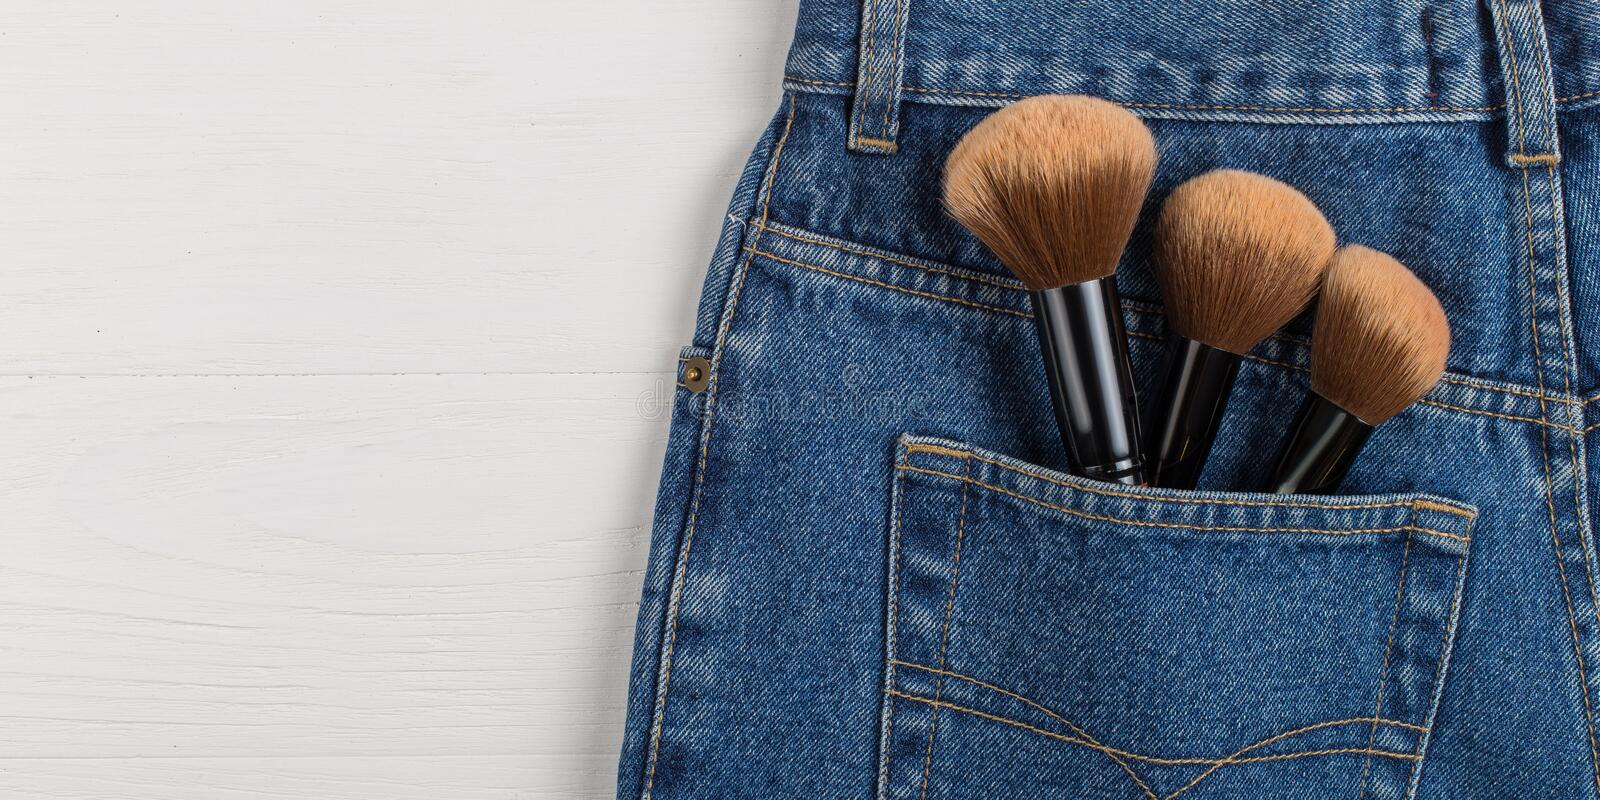 Large makeup brushes in a pocket of blue jeans. Concept, commercial work of a makeup artist, for printing business cards and stock images